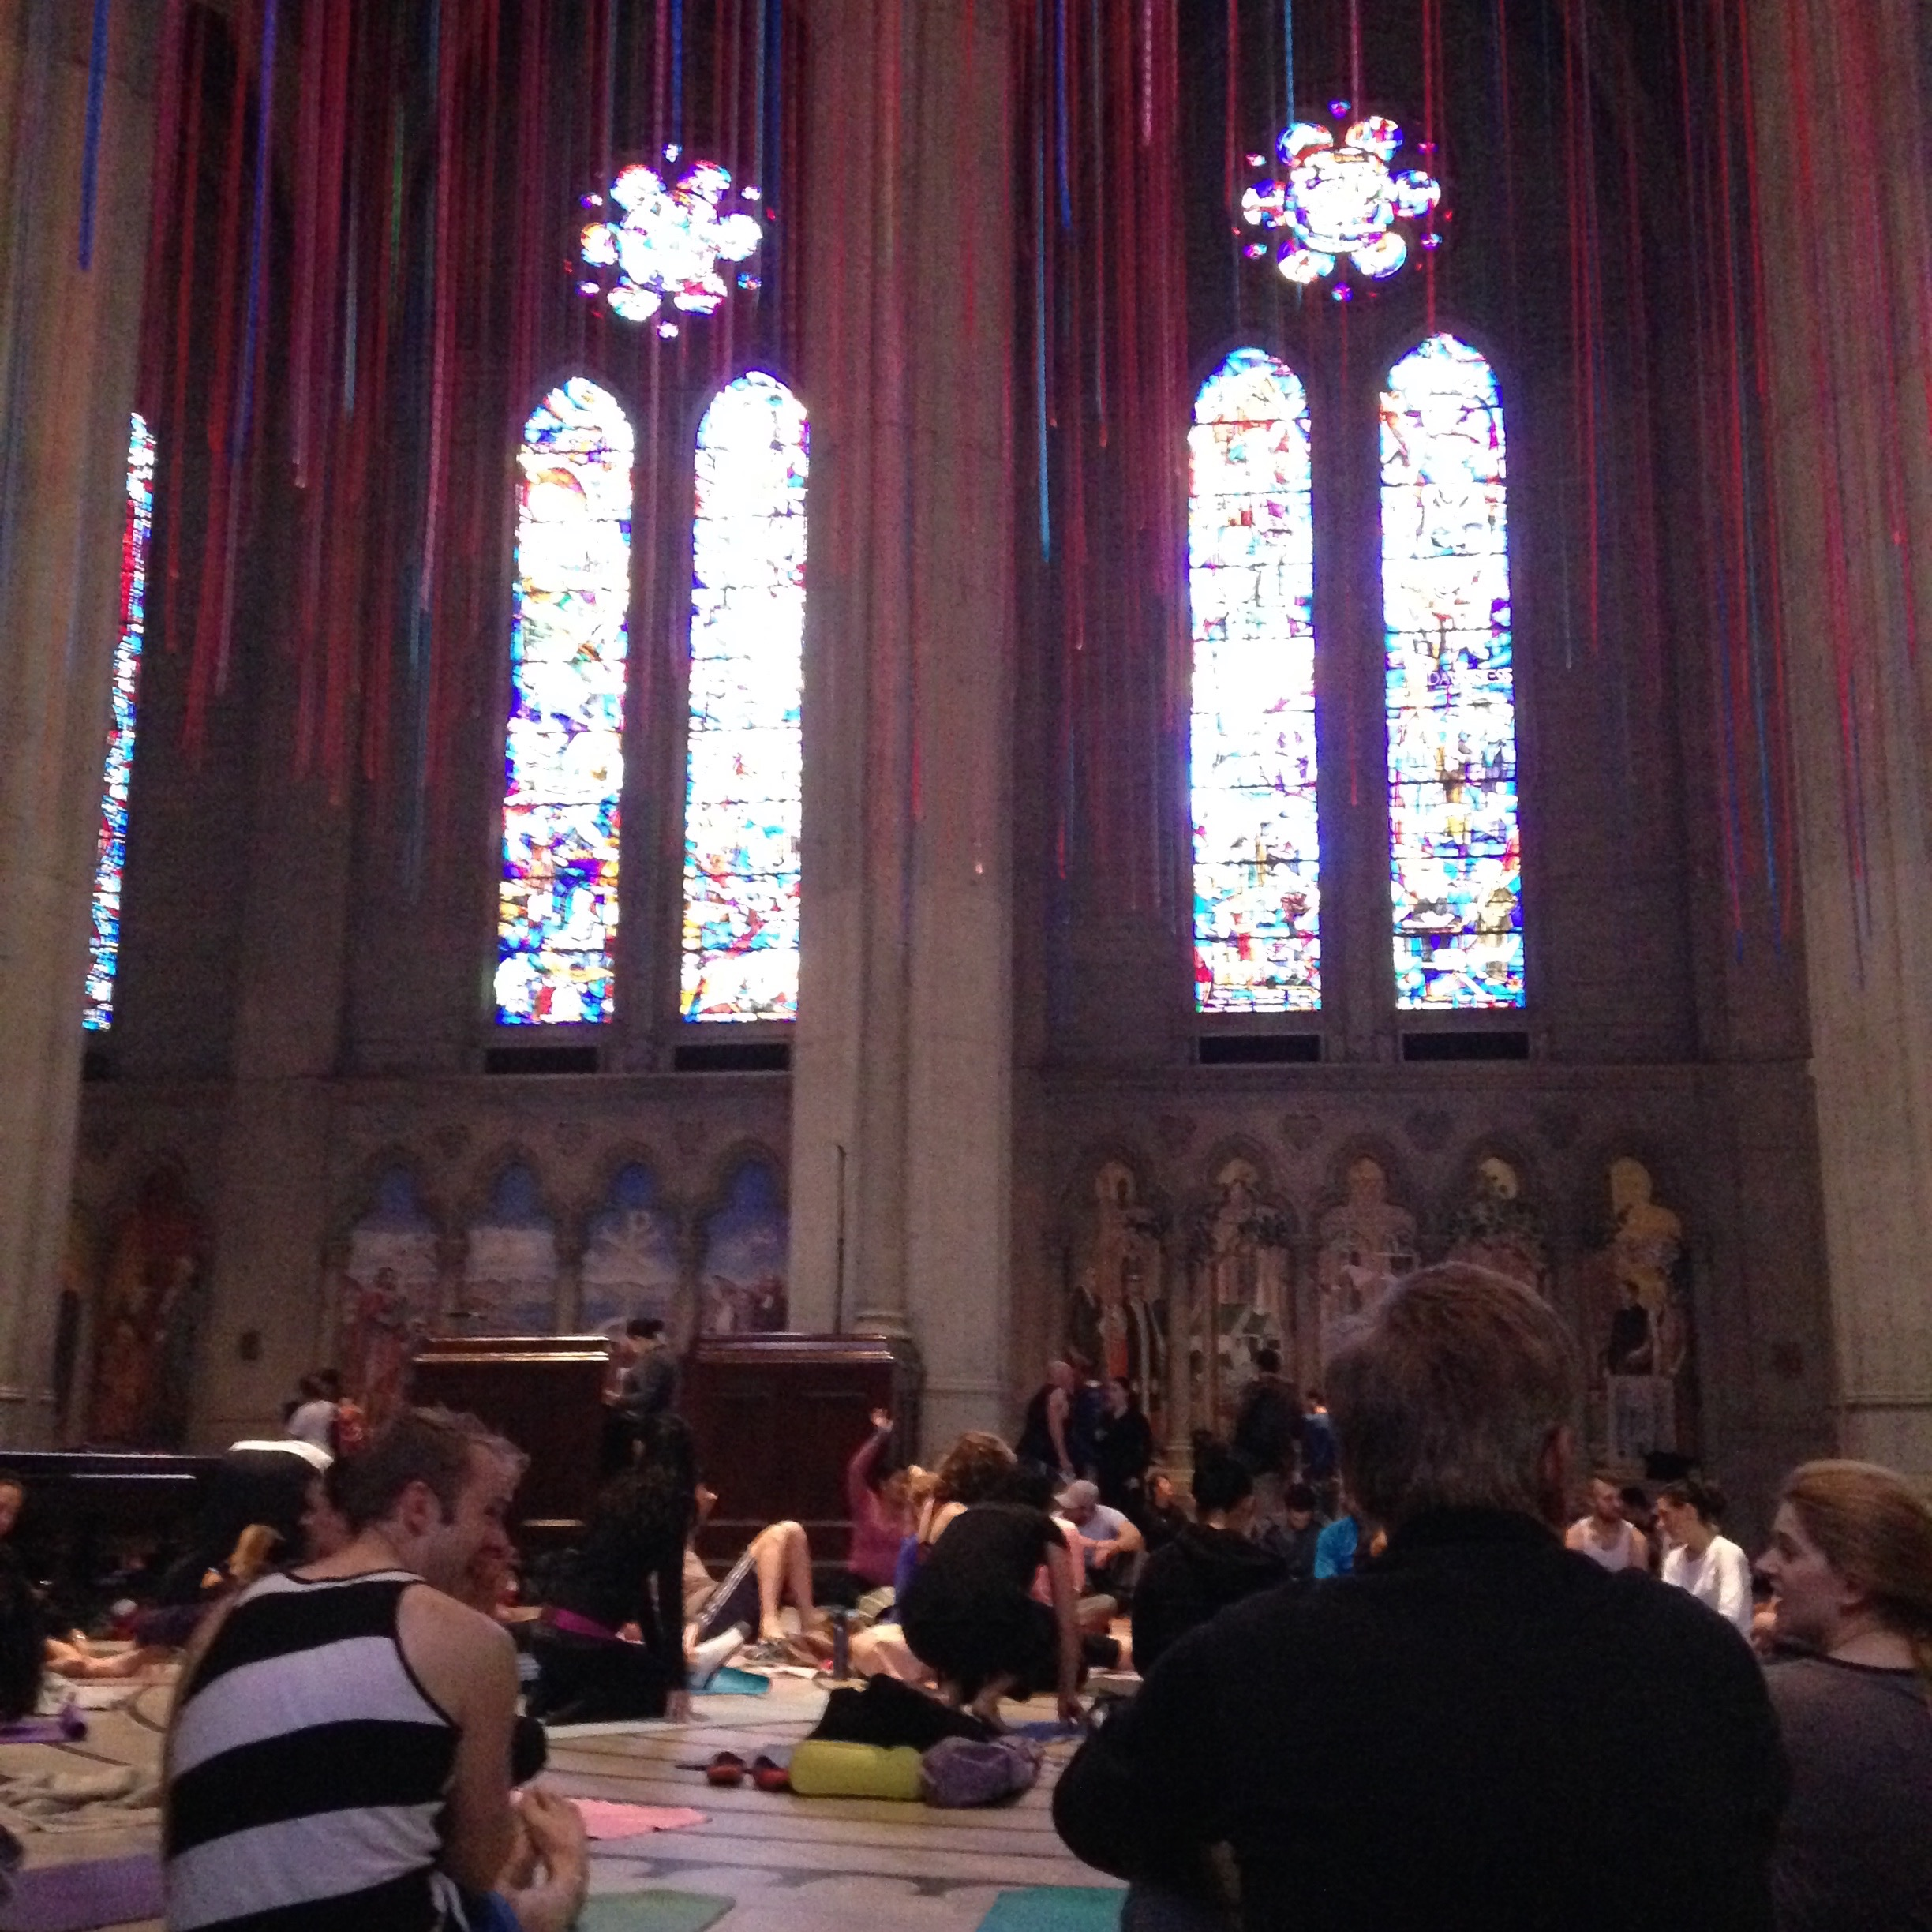 Took my first yoga class at Grace Cathedral for  Yoga on the Labyrinth . It's truly an indescribable experience. Doing yoga in the middle of the cathedral with hundreds of other people is something you have to experience to understand.